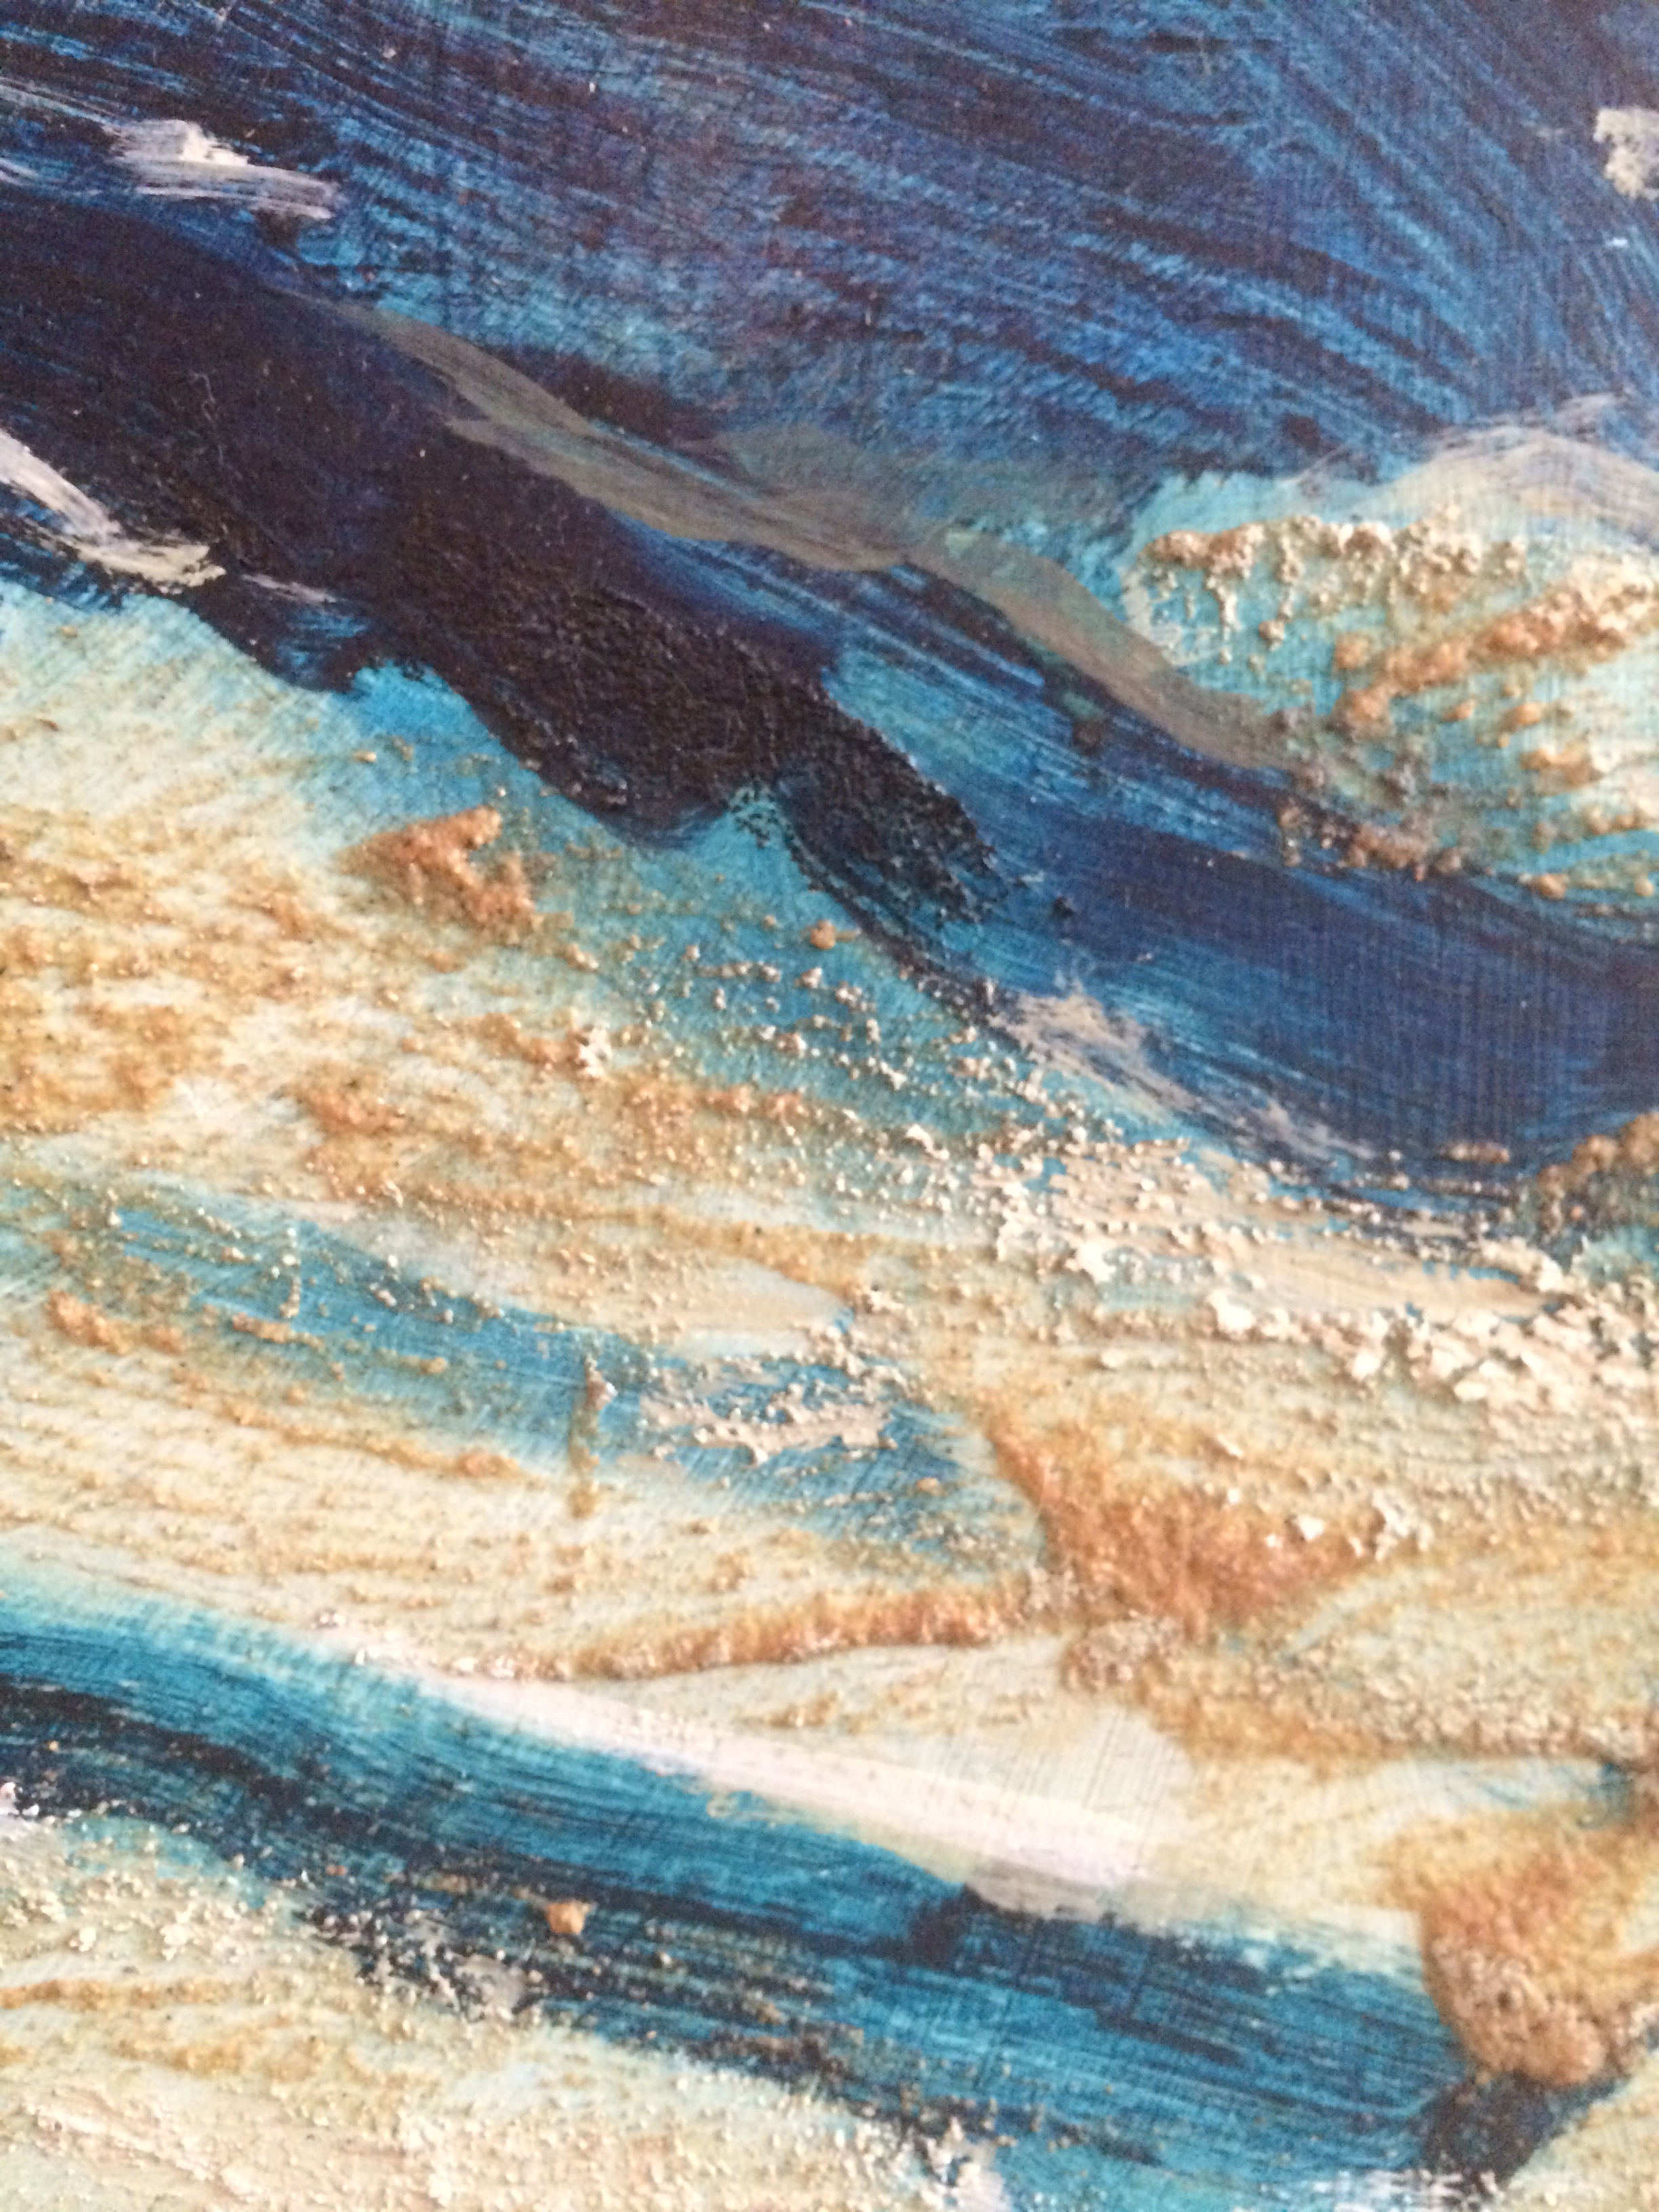 detail #1 from the Metamorphosis of the Ocean   mixed media on wood panel 48in x 48in